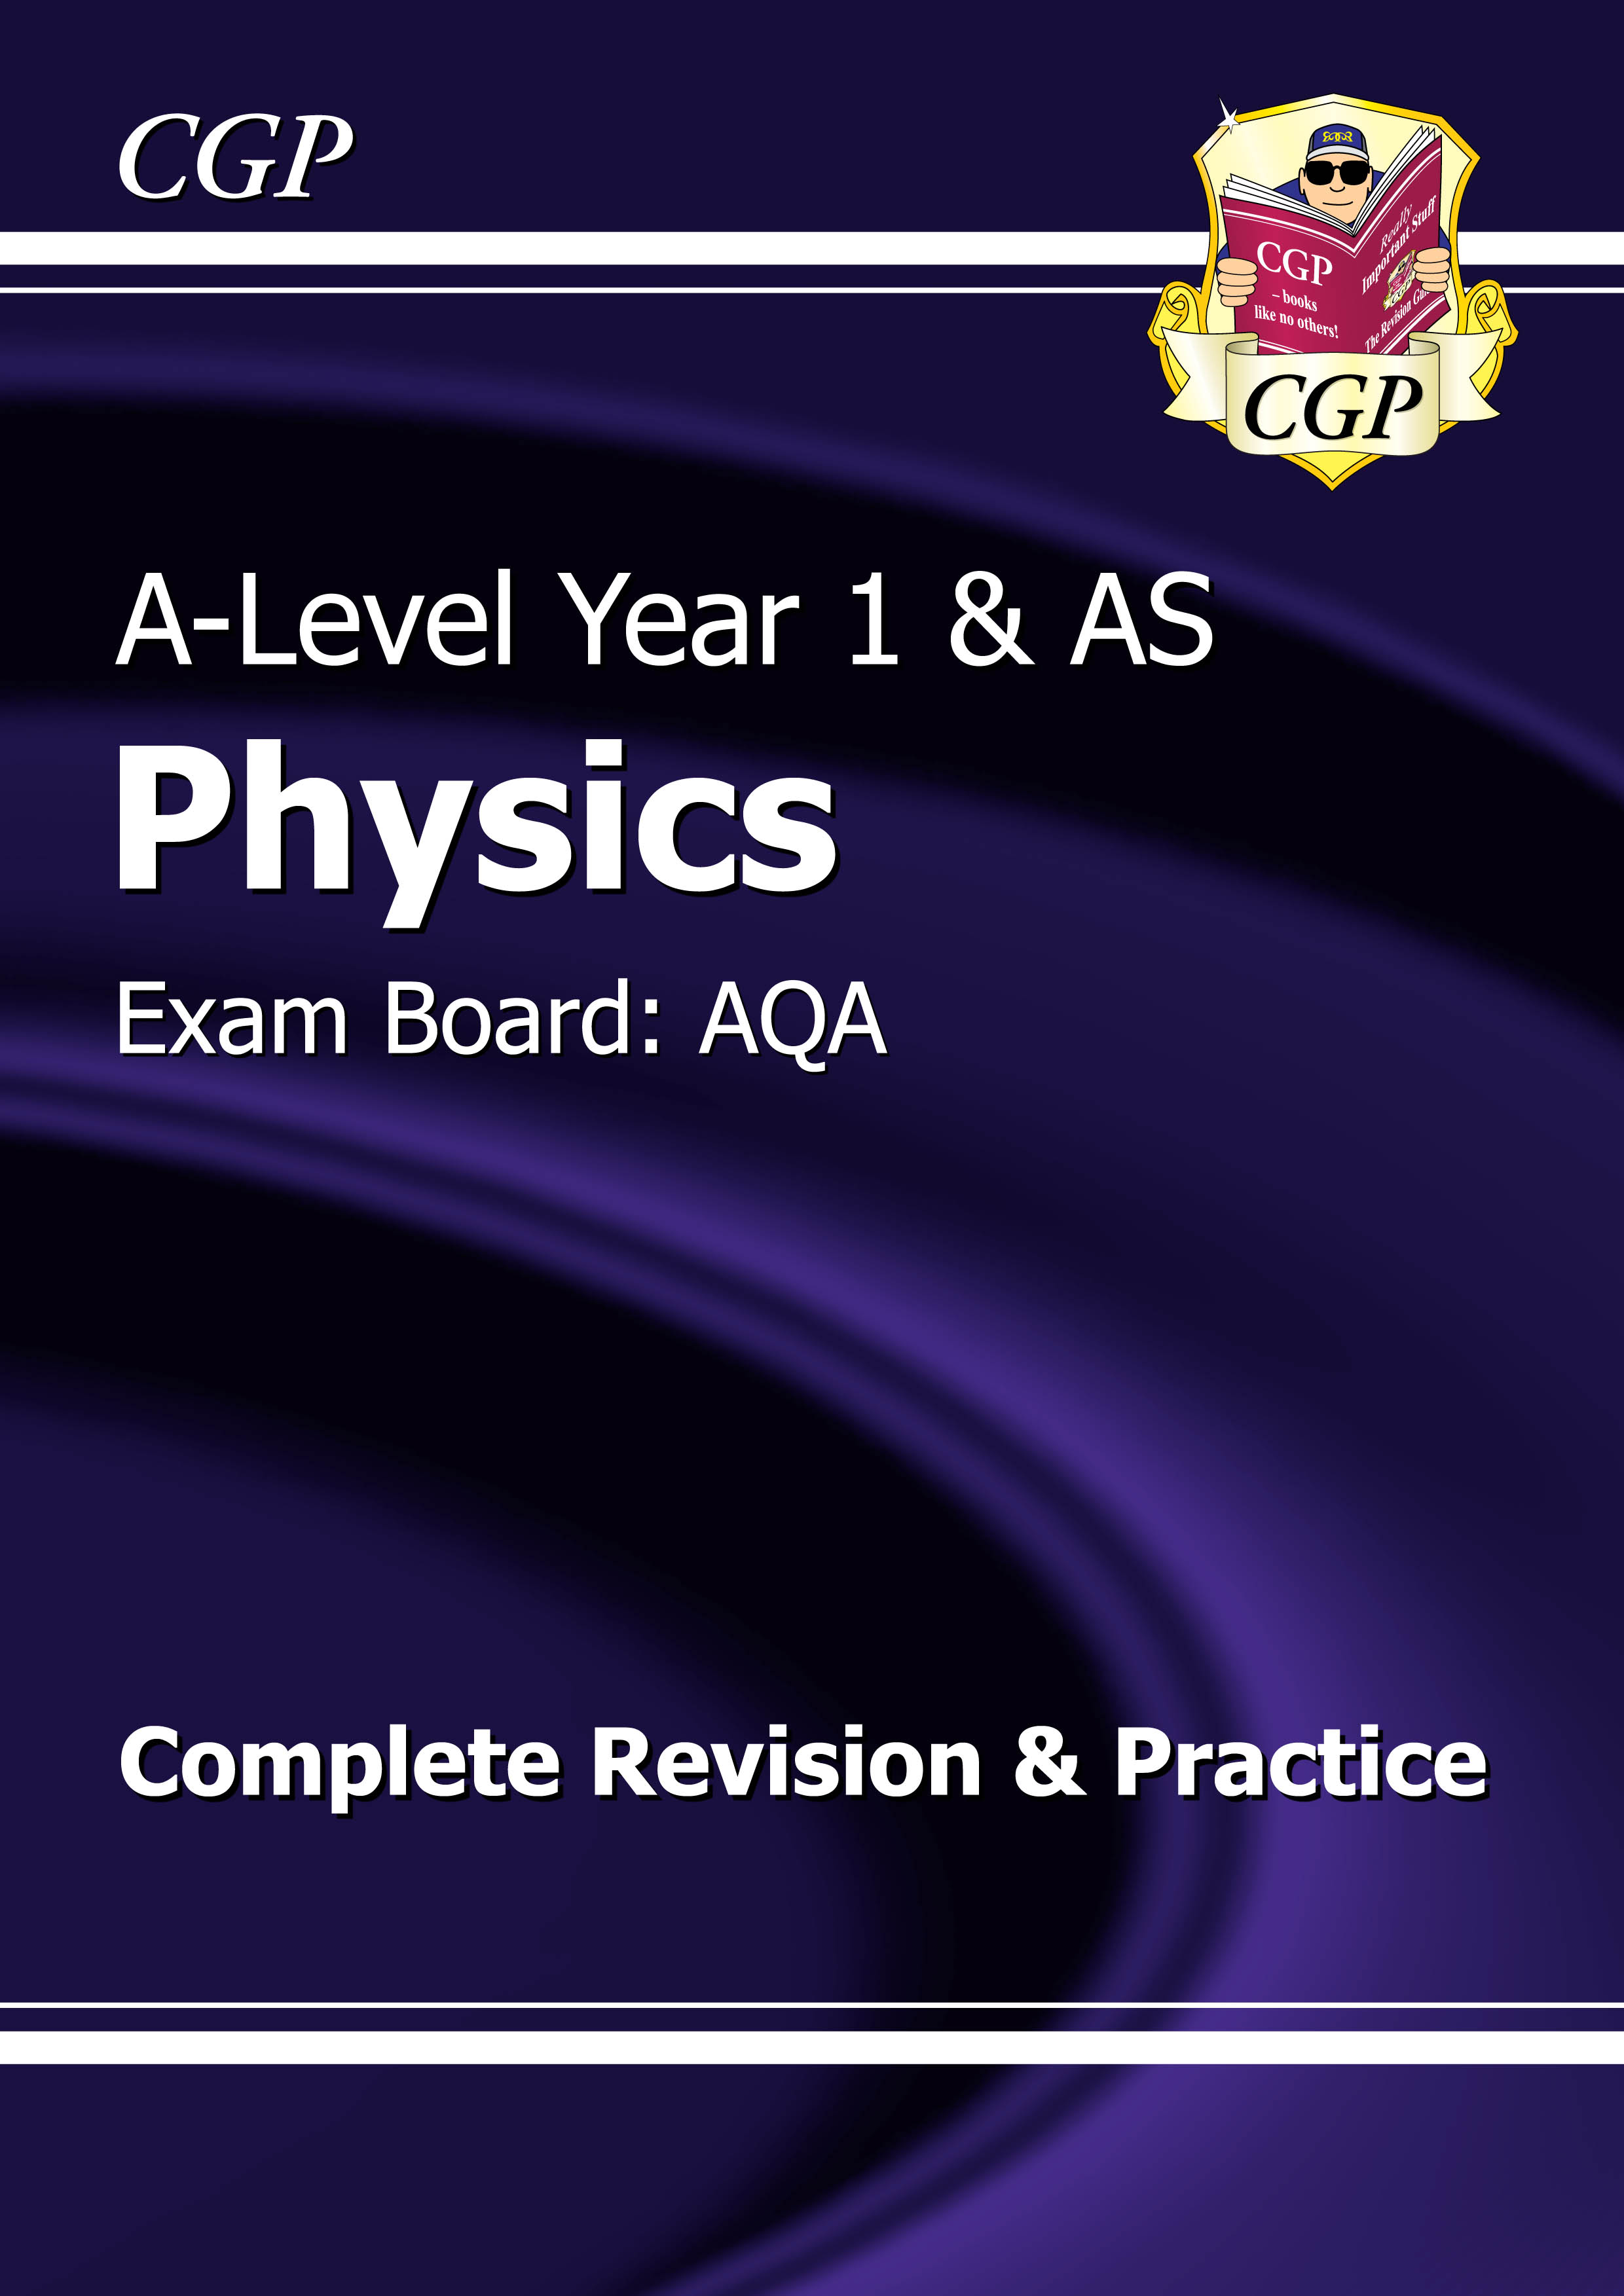 PAR53DK - A-Level Physics: AQA Year 1 & AS Complete Revision & Practice